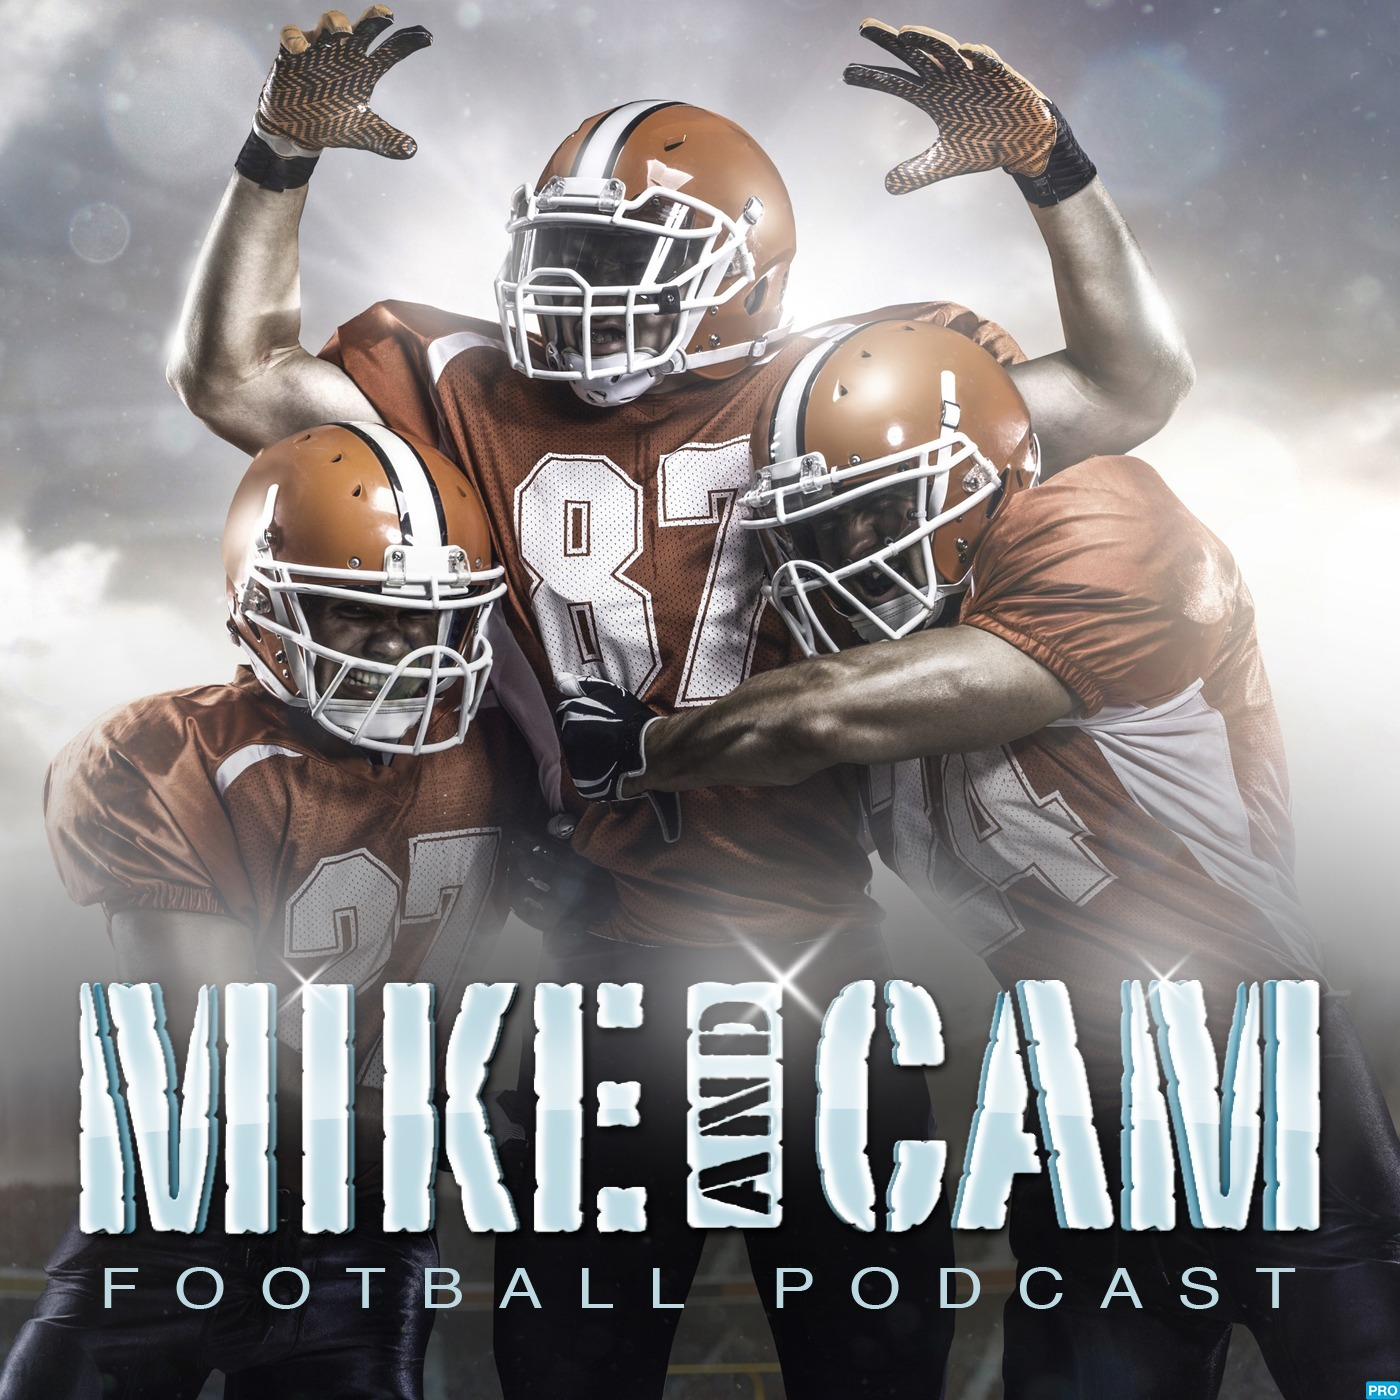 Mike and Cam Football Podcast